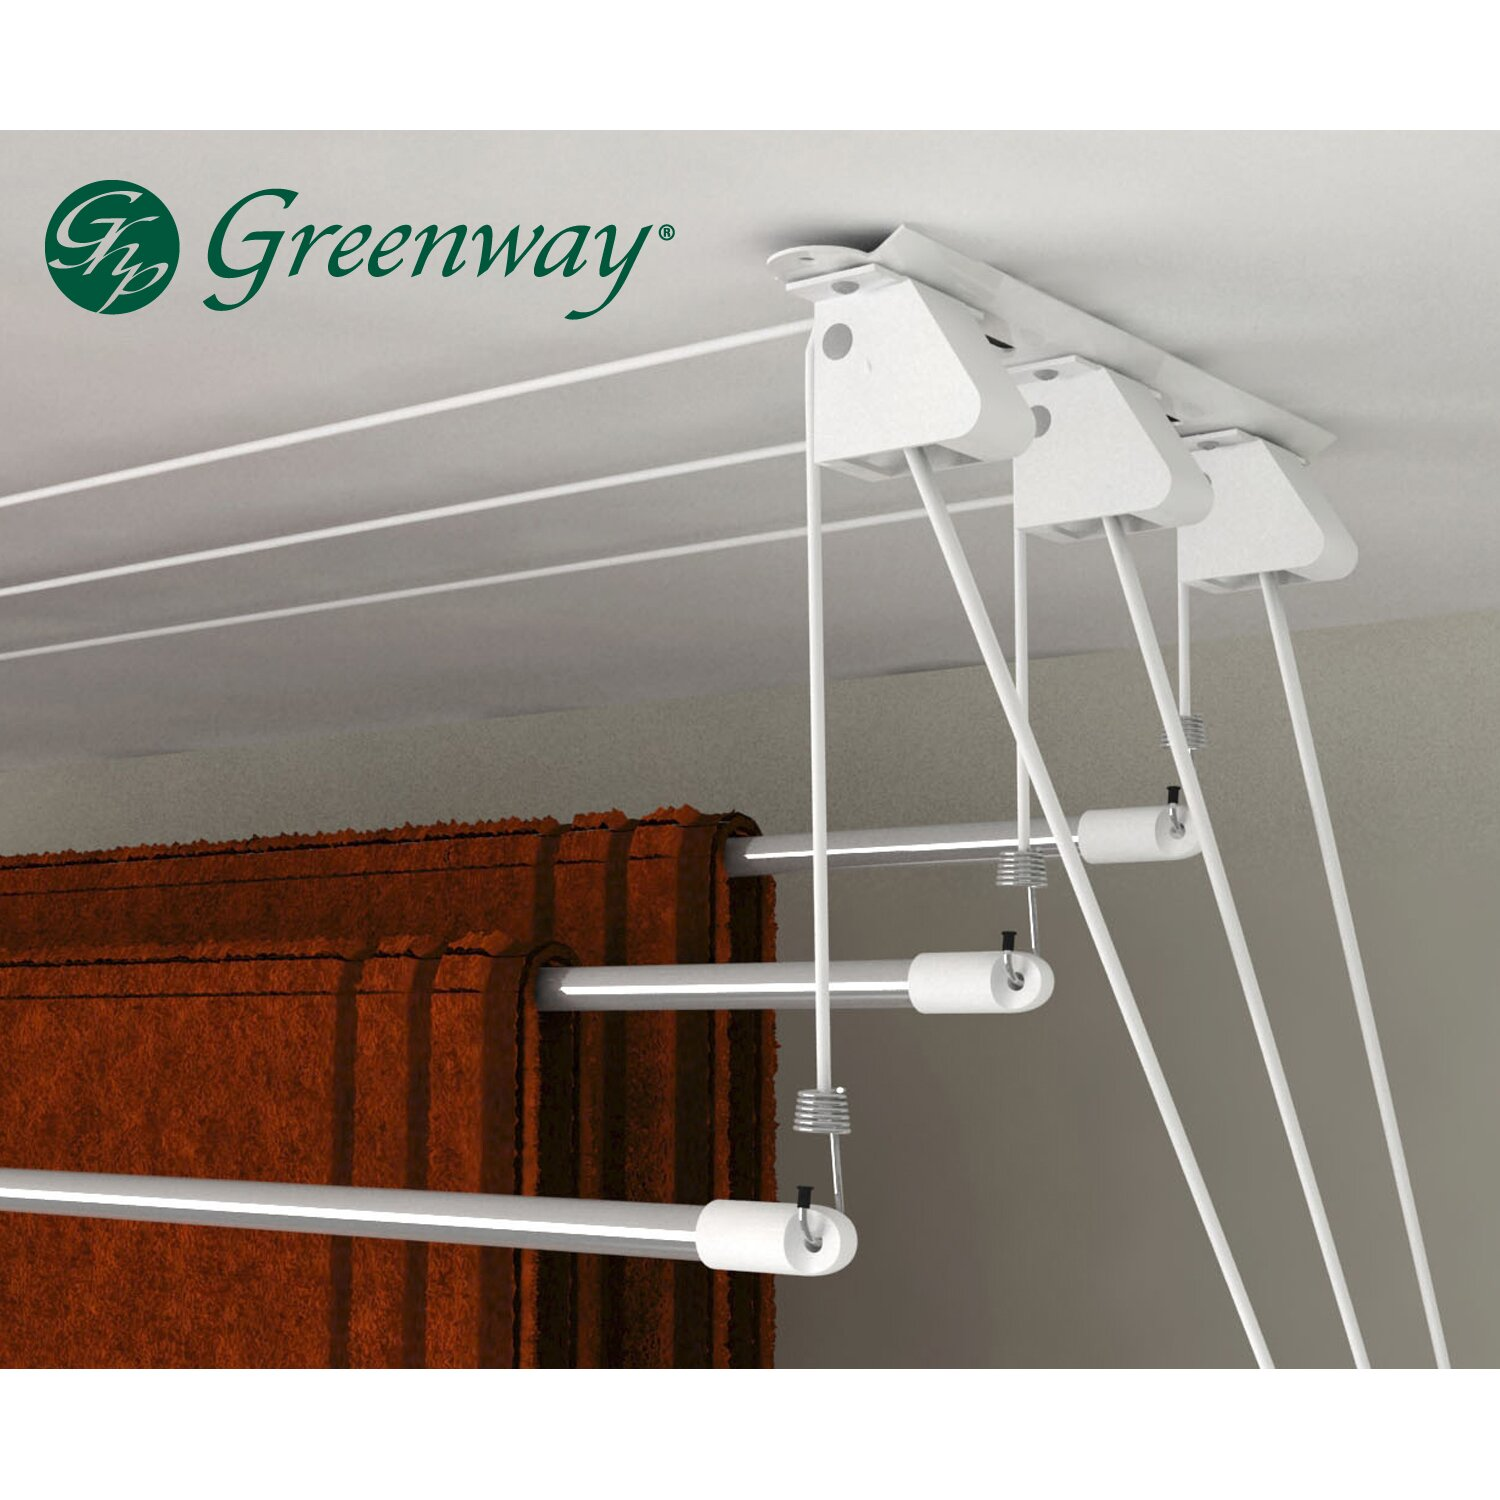 greenway greenway laundry lift retractable drying rack. Black Bedroom Furniture Sets. Home Design Ideas